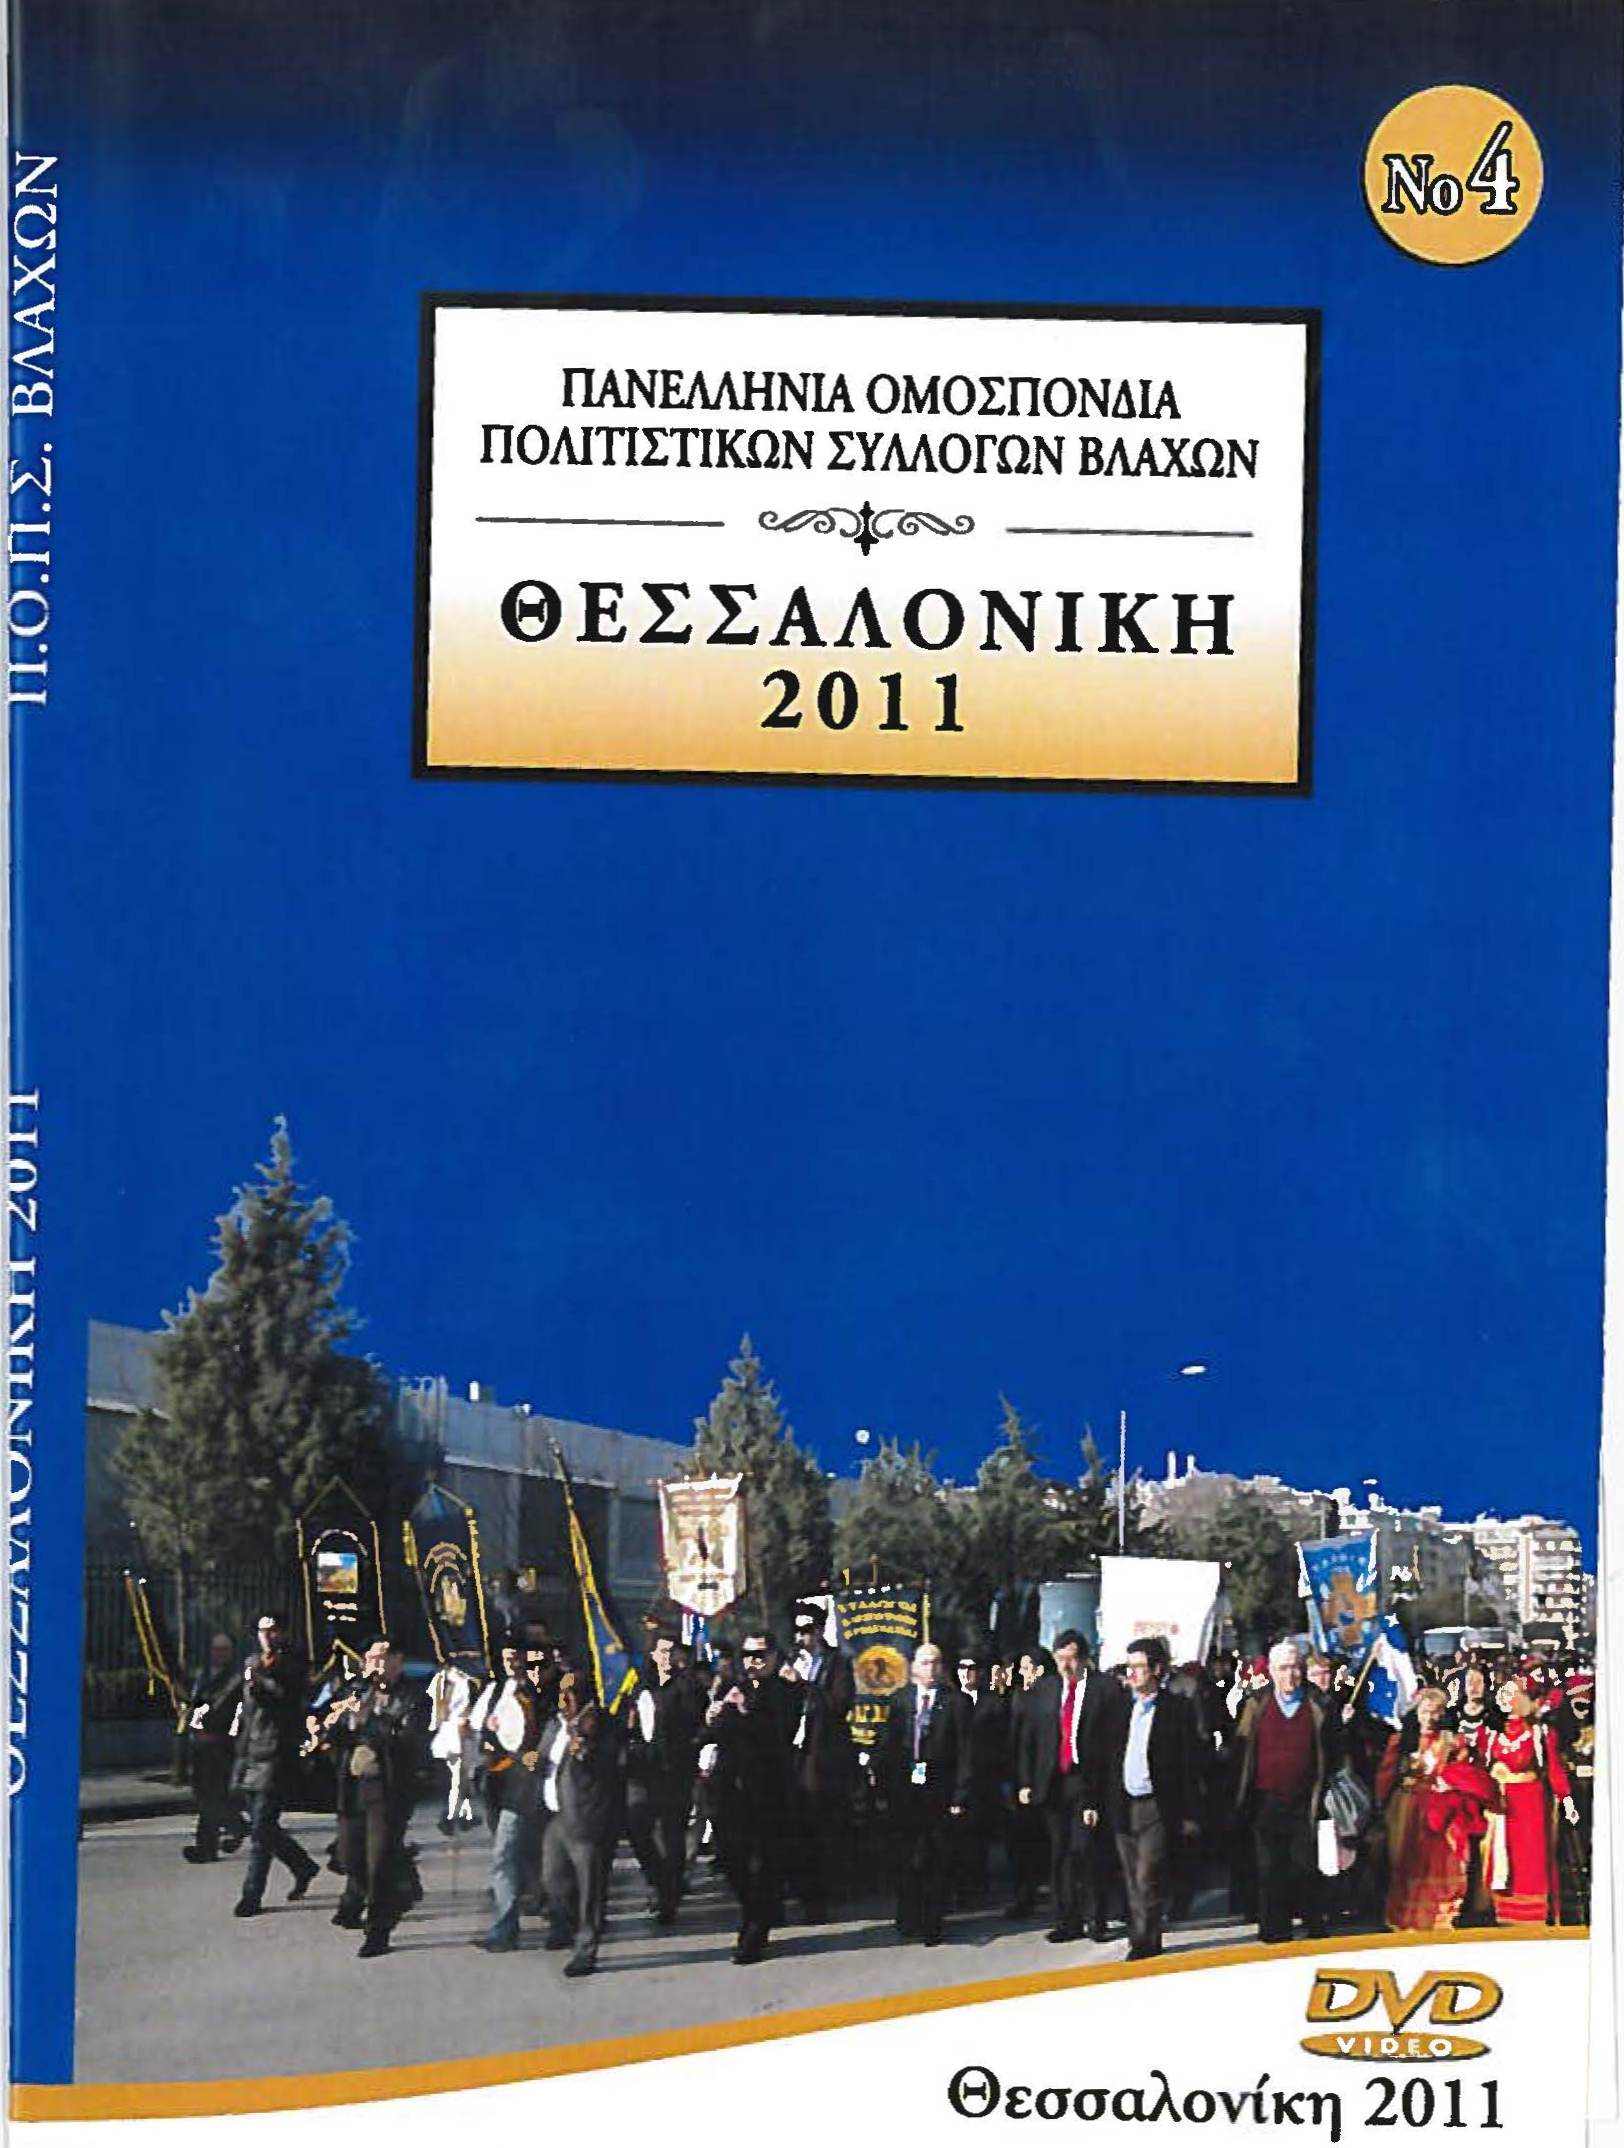 PANHELLENIC FEDERATION OF CULTURAL ASSOCIATIONS OF VLACHS SALONIKA 2011